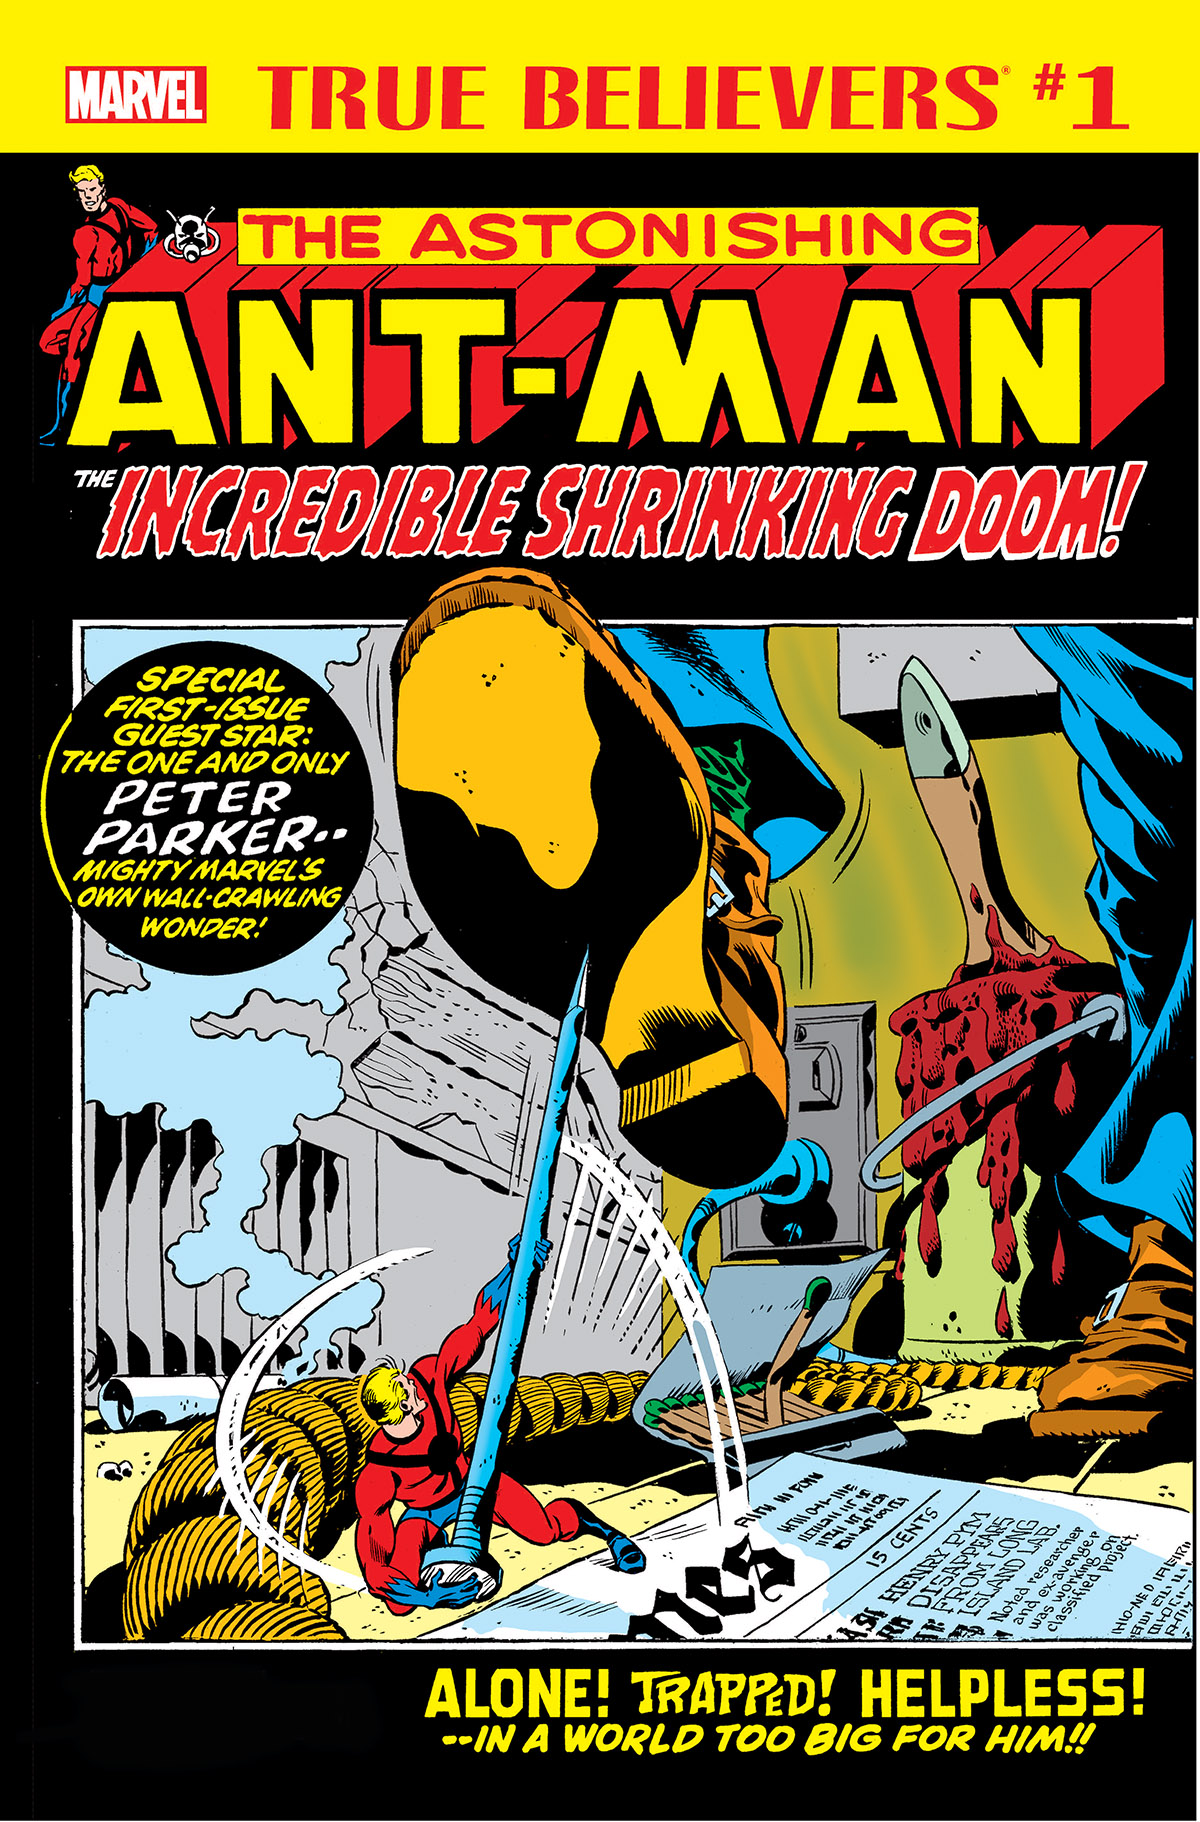 True Believers: Ant-Man - The Incredible Shrinking Doom (2018) #1